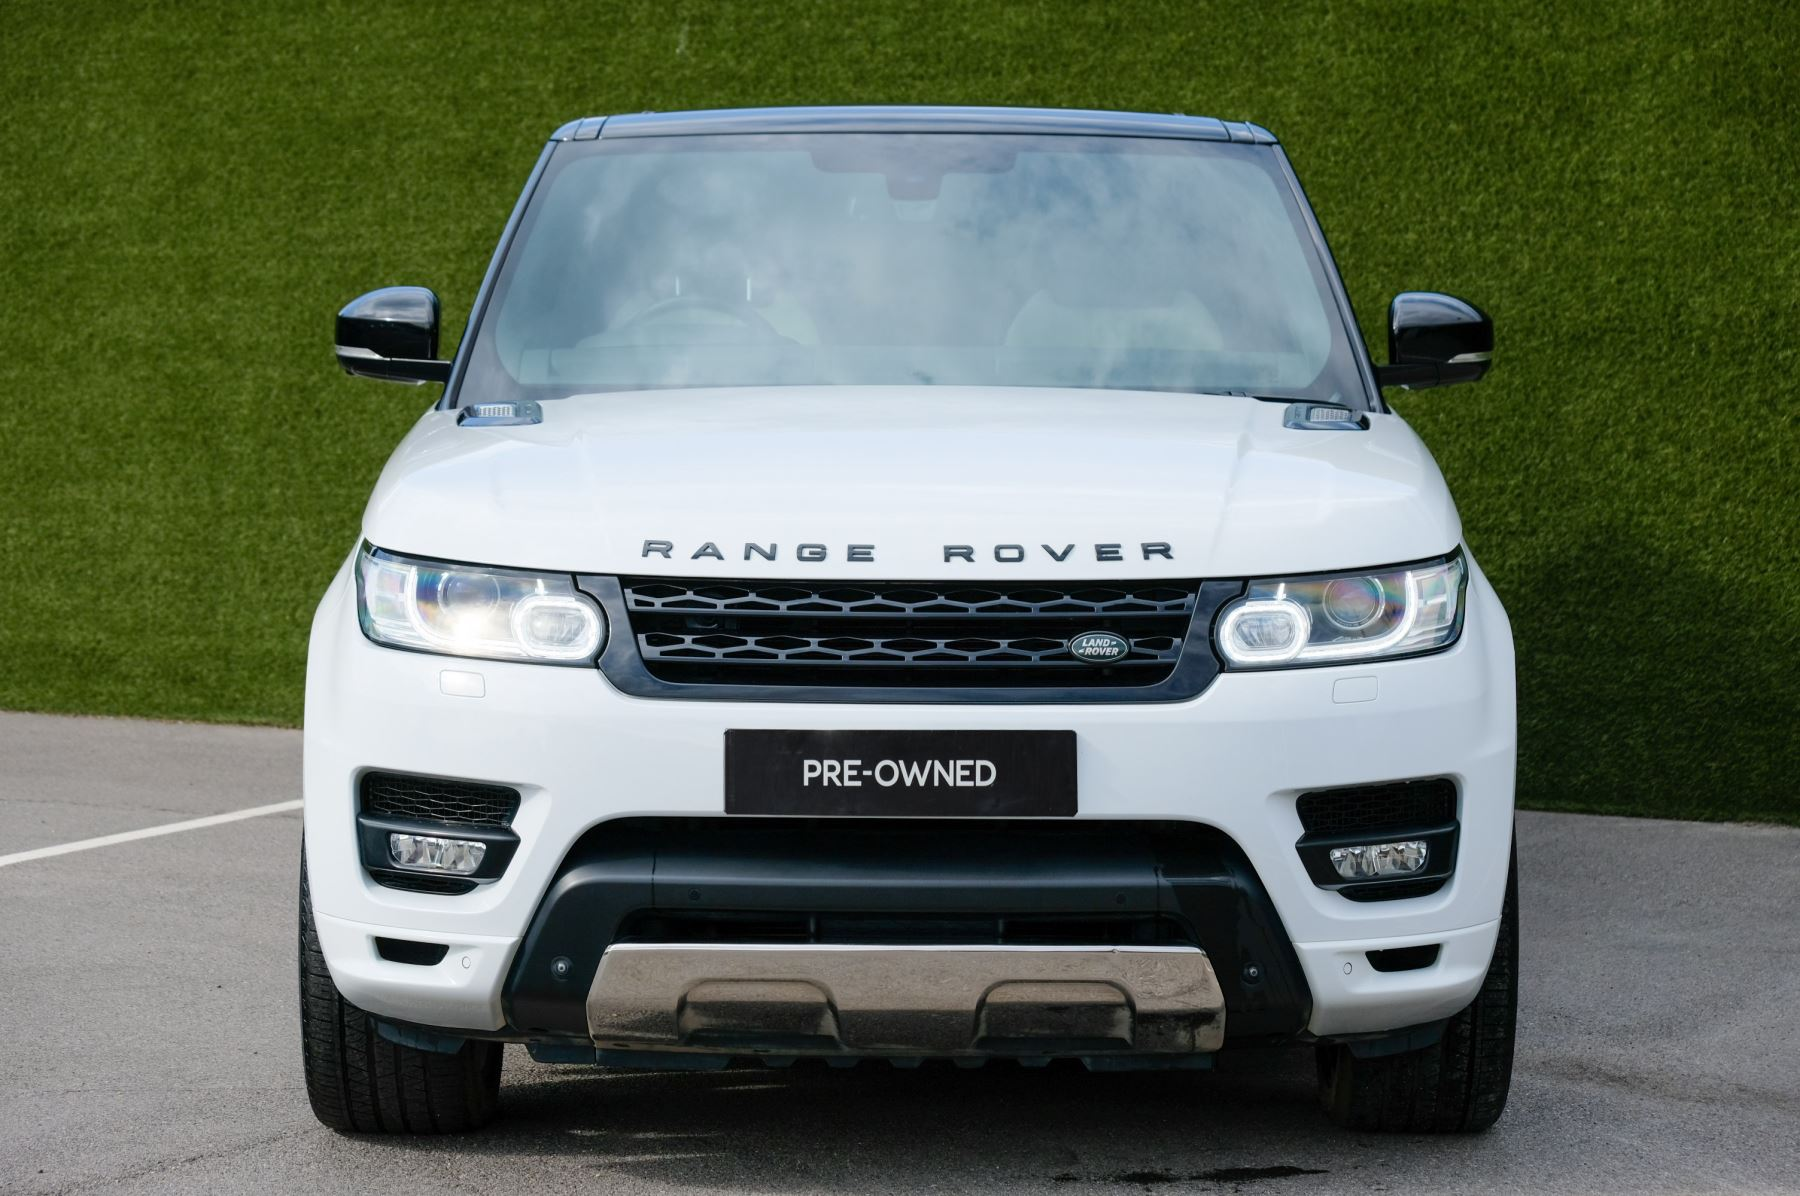 Land Rover Range Rover Sport 5.0 V8 S/C Autobiography Dynamic - 22 Inch Alloy Wheels - LED Signature Lights - 360 Camera image 2